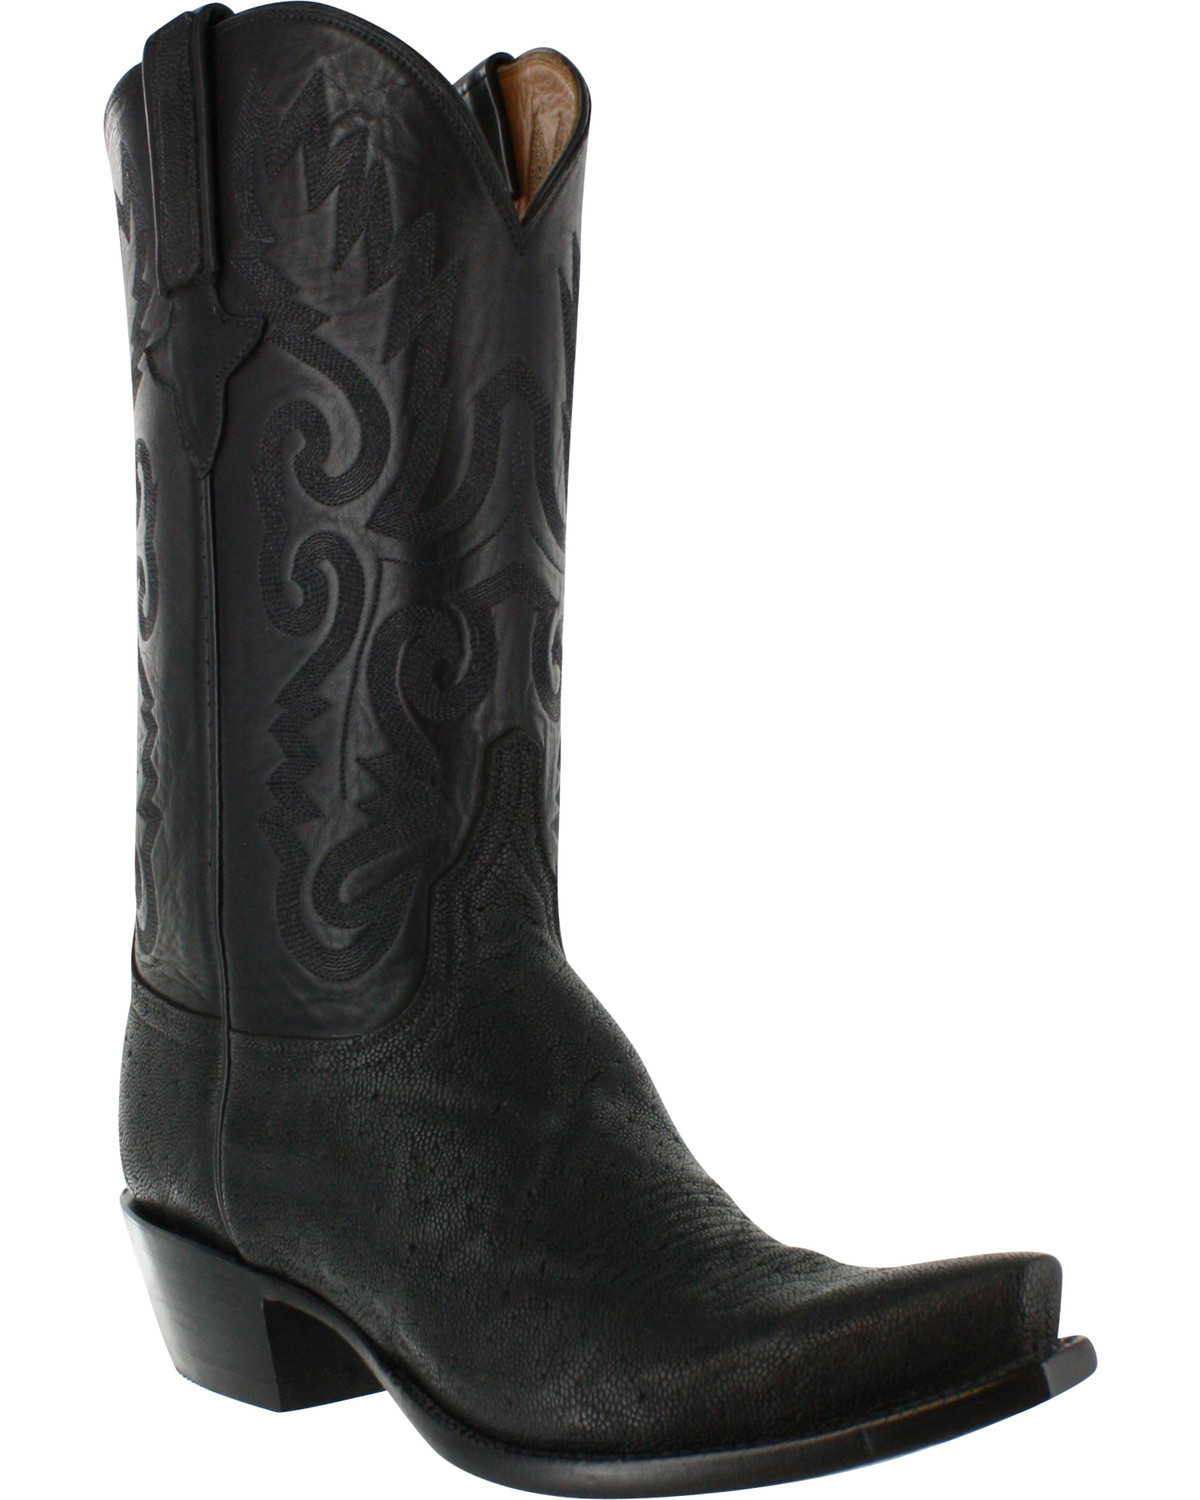 2f6c857df86 Lucchese Men's Exotic Elephant Western Boots